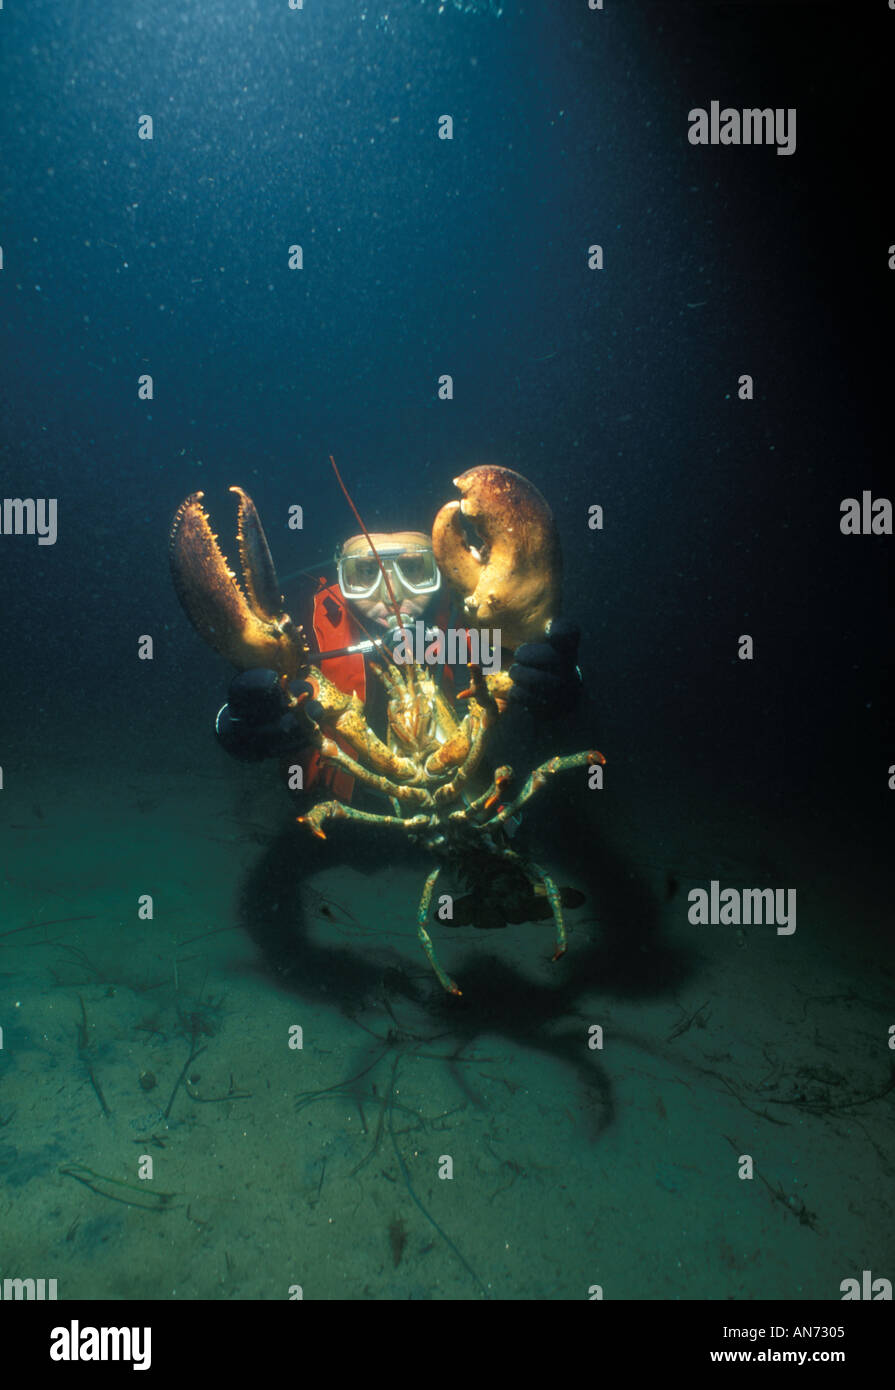 Diver holds Northern American Lobster - Stock Image